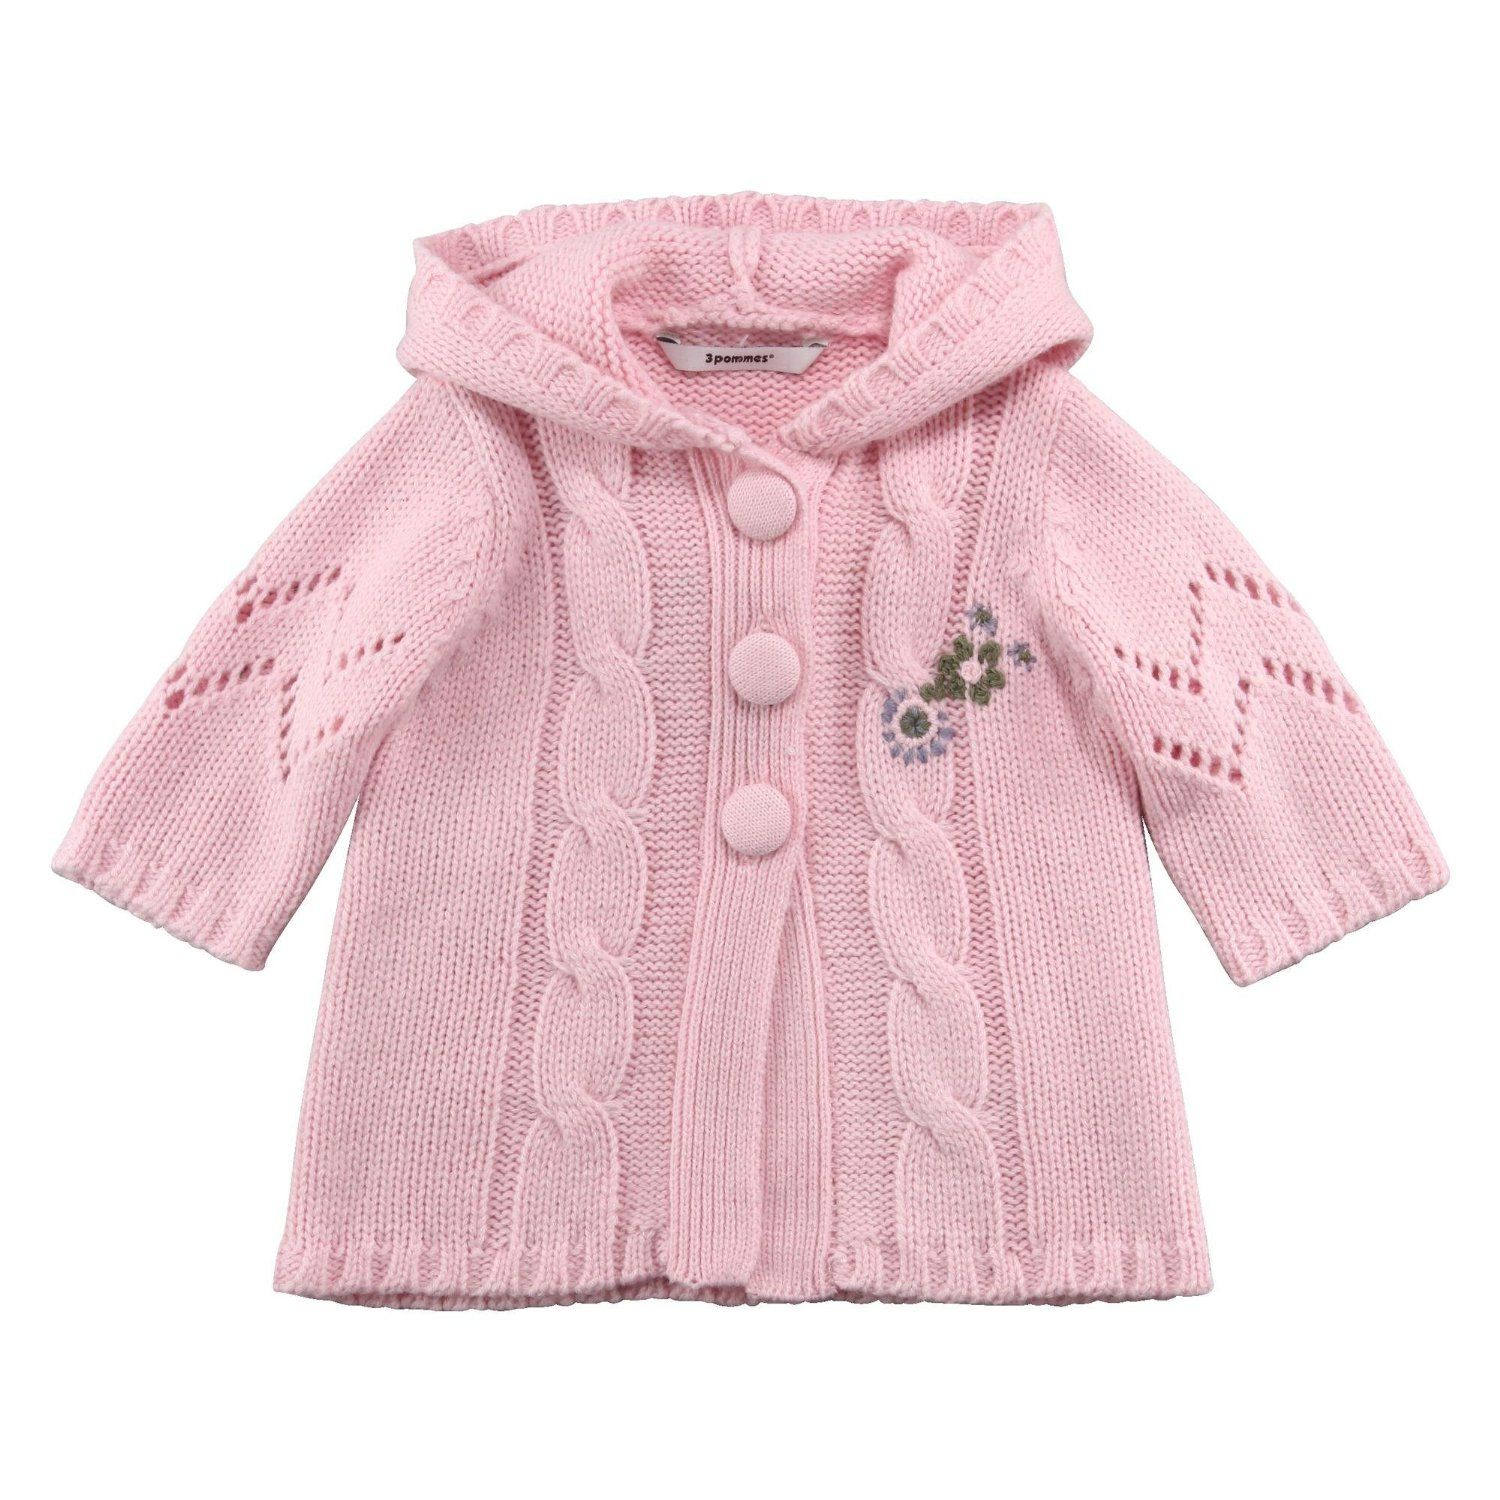 3Pommes 3418082 Baby Girl's Knitted Hooded Cardigan Baby Pink 6 ...